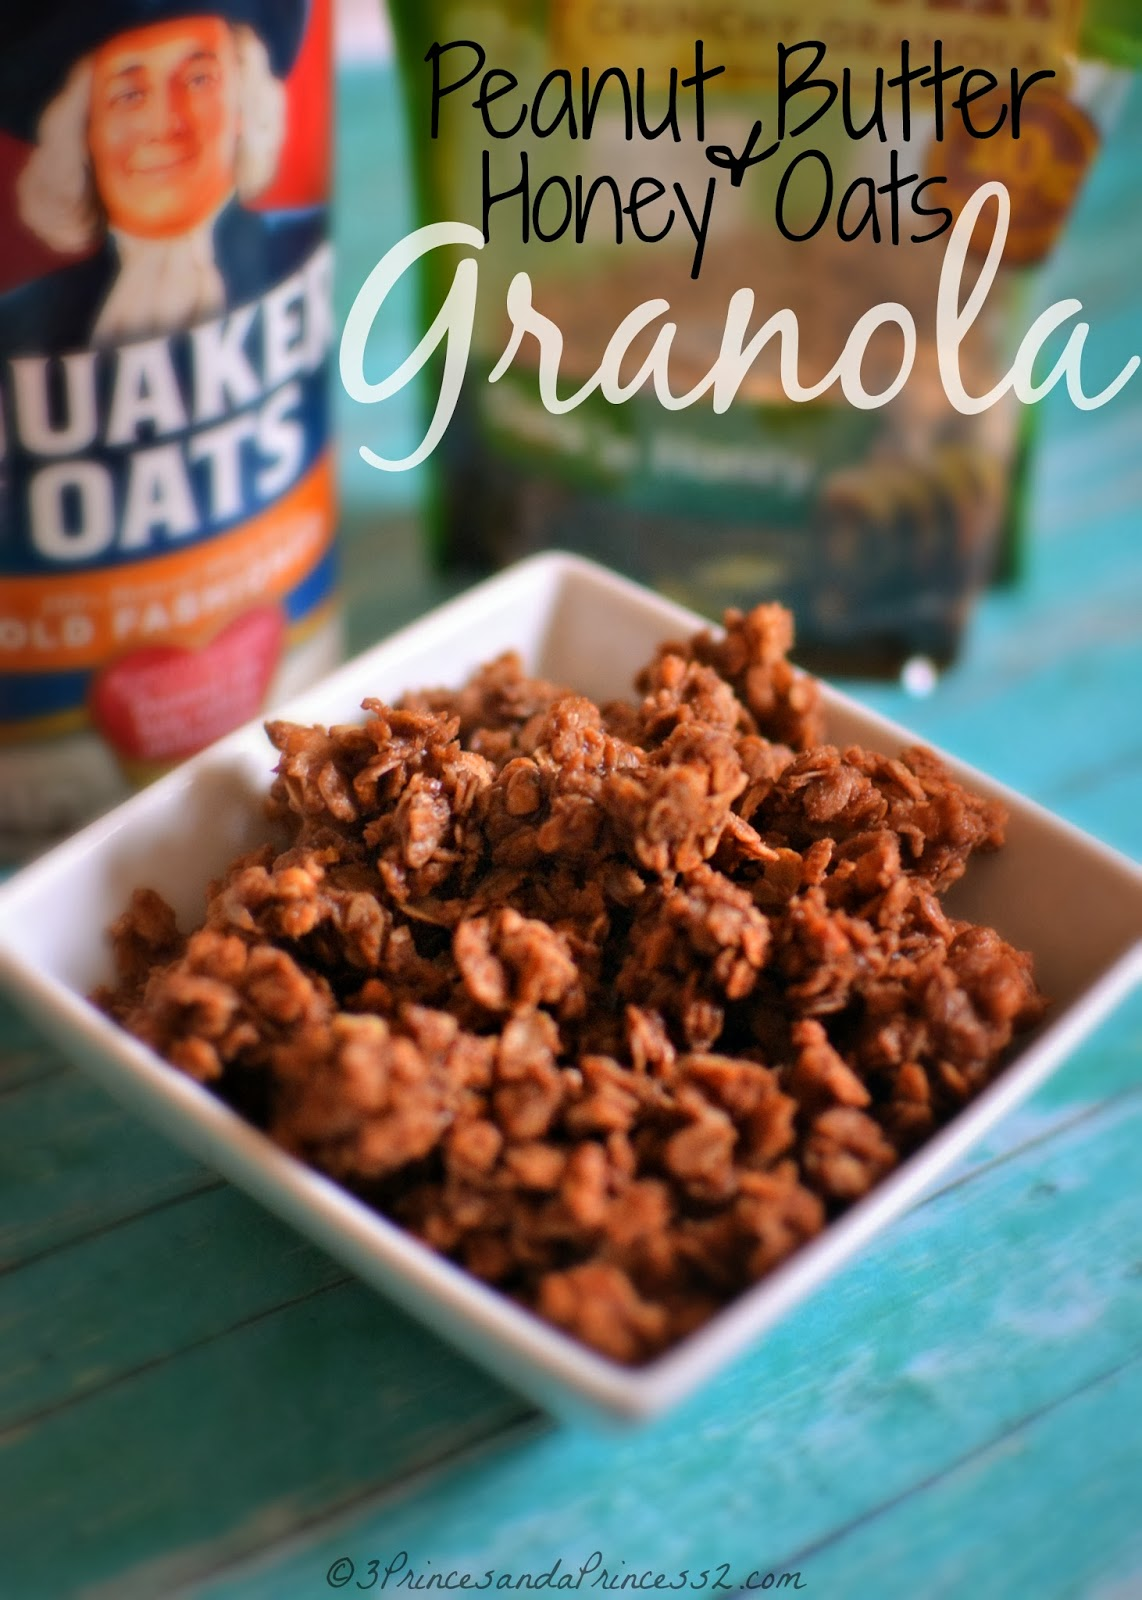 A Granola Twist: Peanut Butter & Honey Oats Granola #Recipe